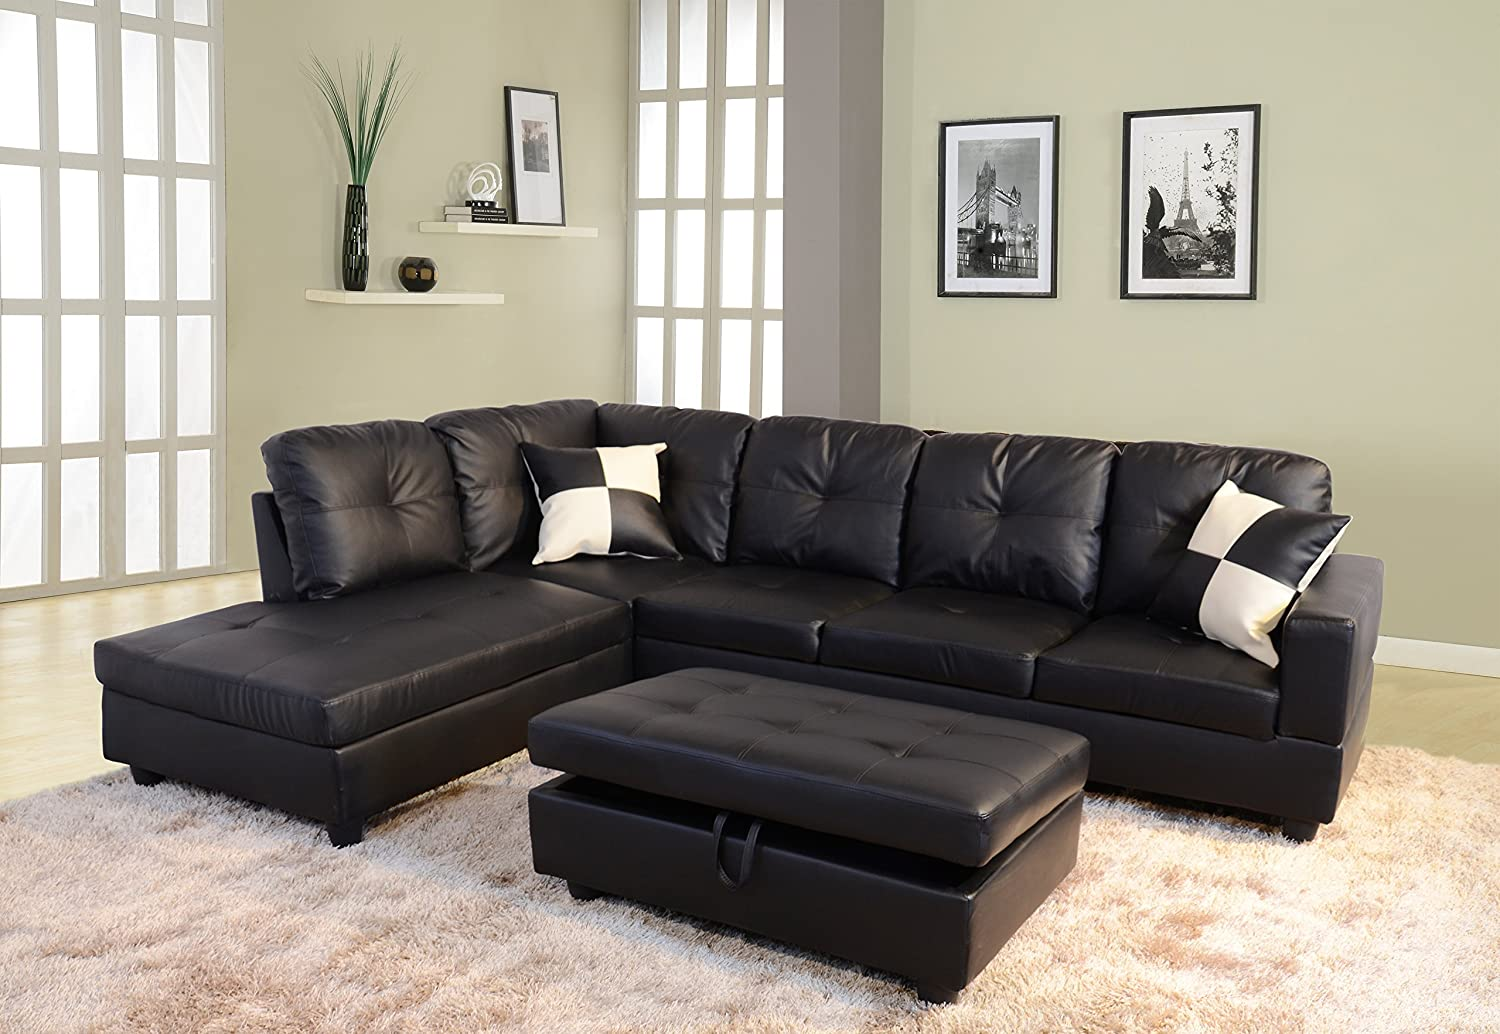 amazoncom beverly furniture beverly black 3 piecefaux leather rightfacing sectional sofa set with storage ottoman black kitchen u0026 dining